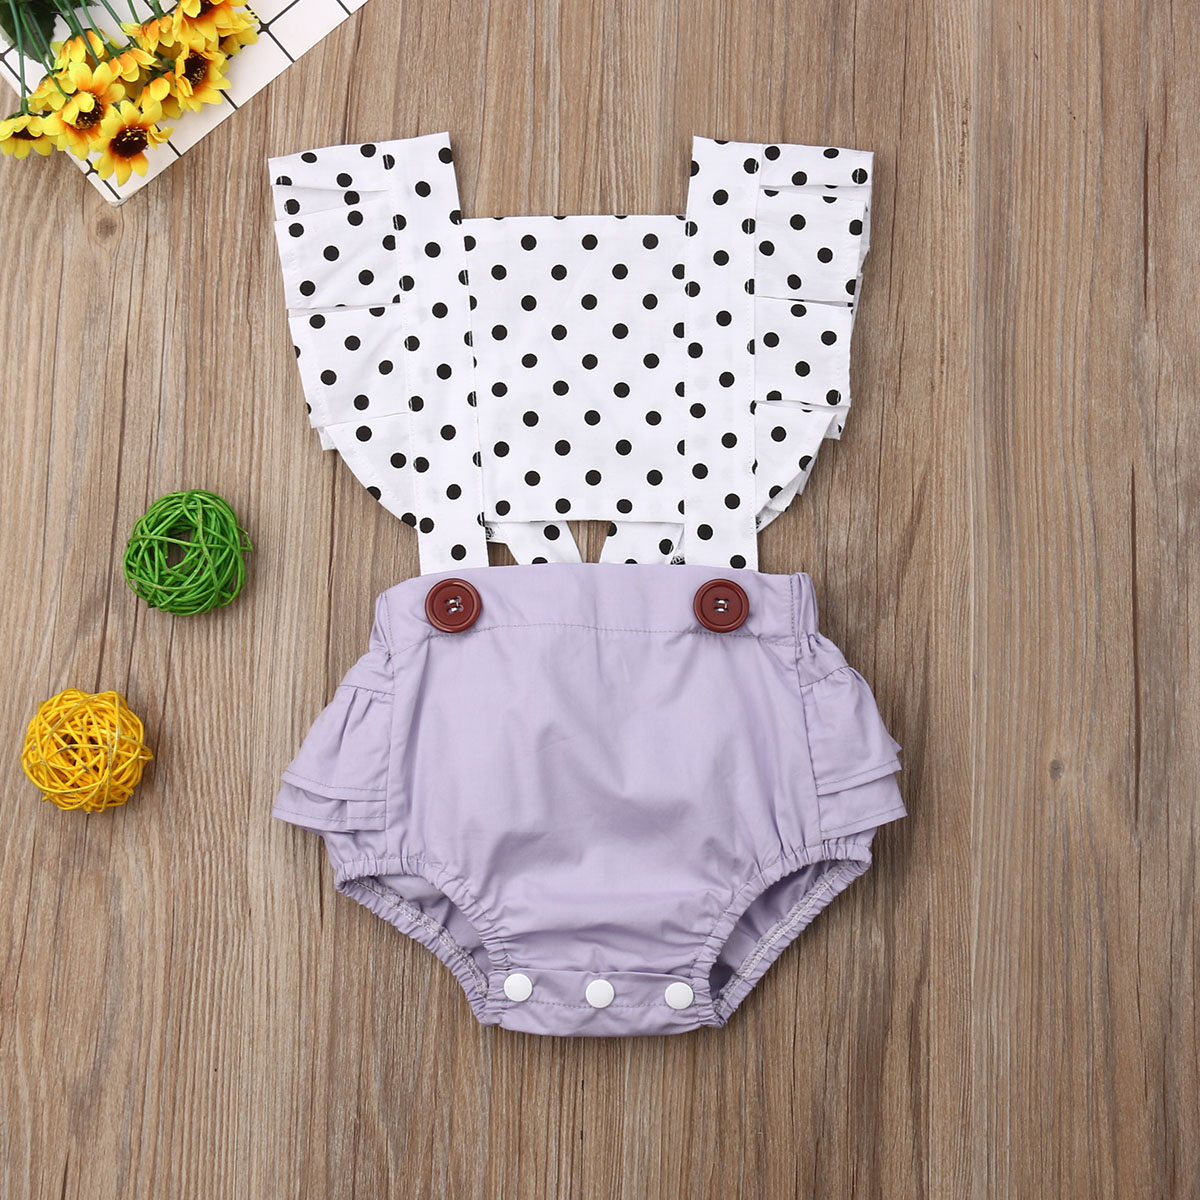 Adorable Newborn Baby Girl Polka Dot   Romper   Sleeveless Backless Hollow Out Jumpsuit Outfit Clothes 0-24 Months